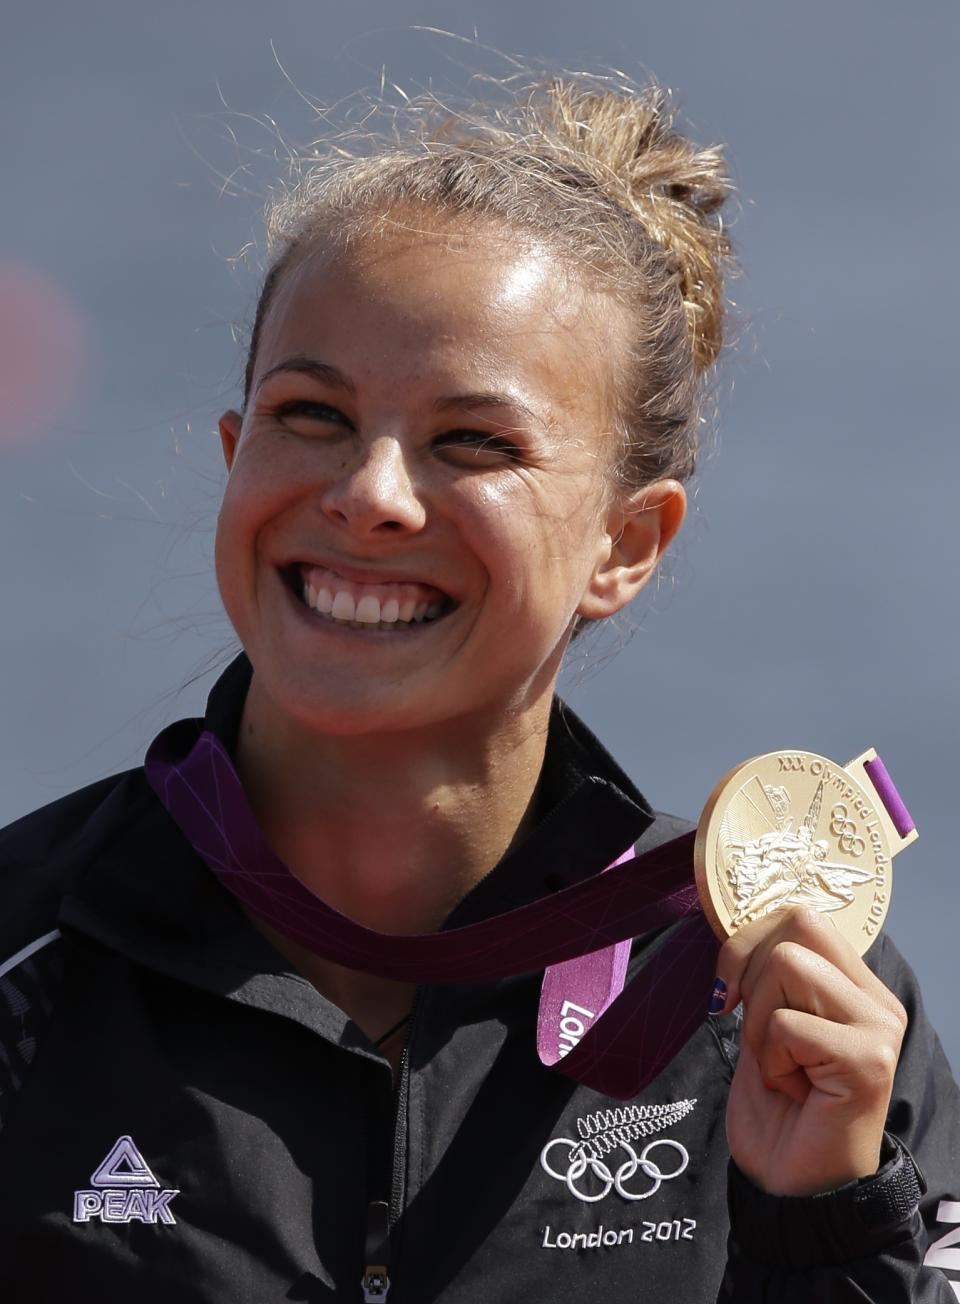 New Zealand's Lisa Carrington celebrates at the podium after winning the gold medal women's kayak single 200m in Eton Dorney, near Windsor, England, at the 2012 Summer Olympics, Saturday, Aug. 11, 2012. (AP Photo/Natacha Pisarenko)